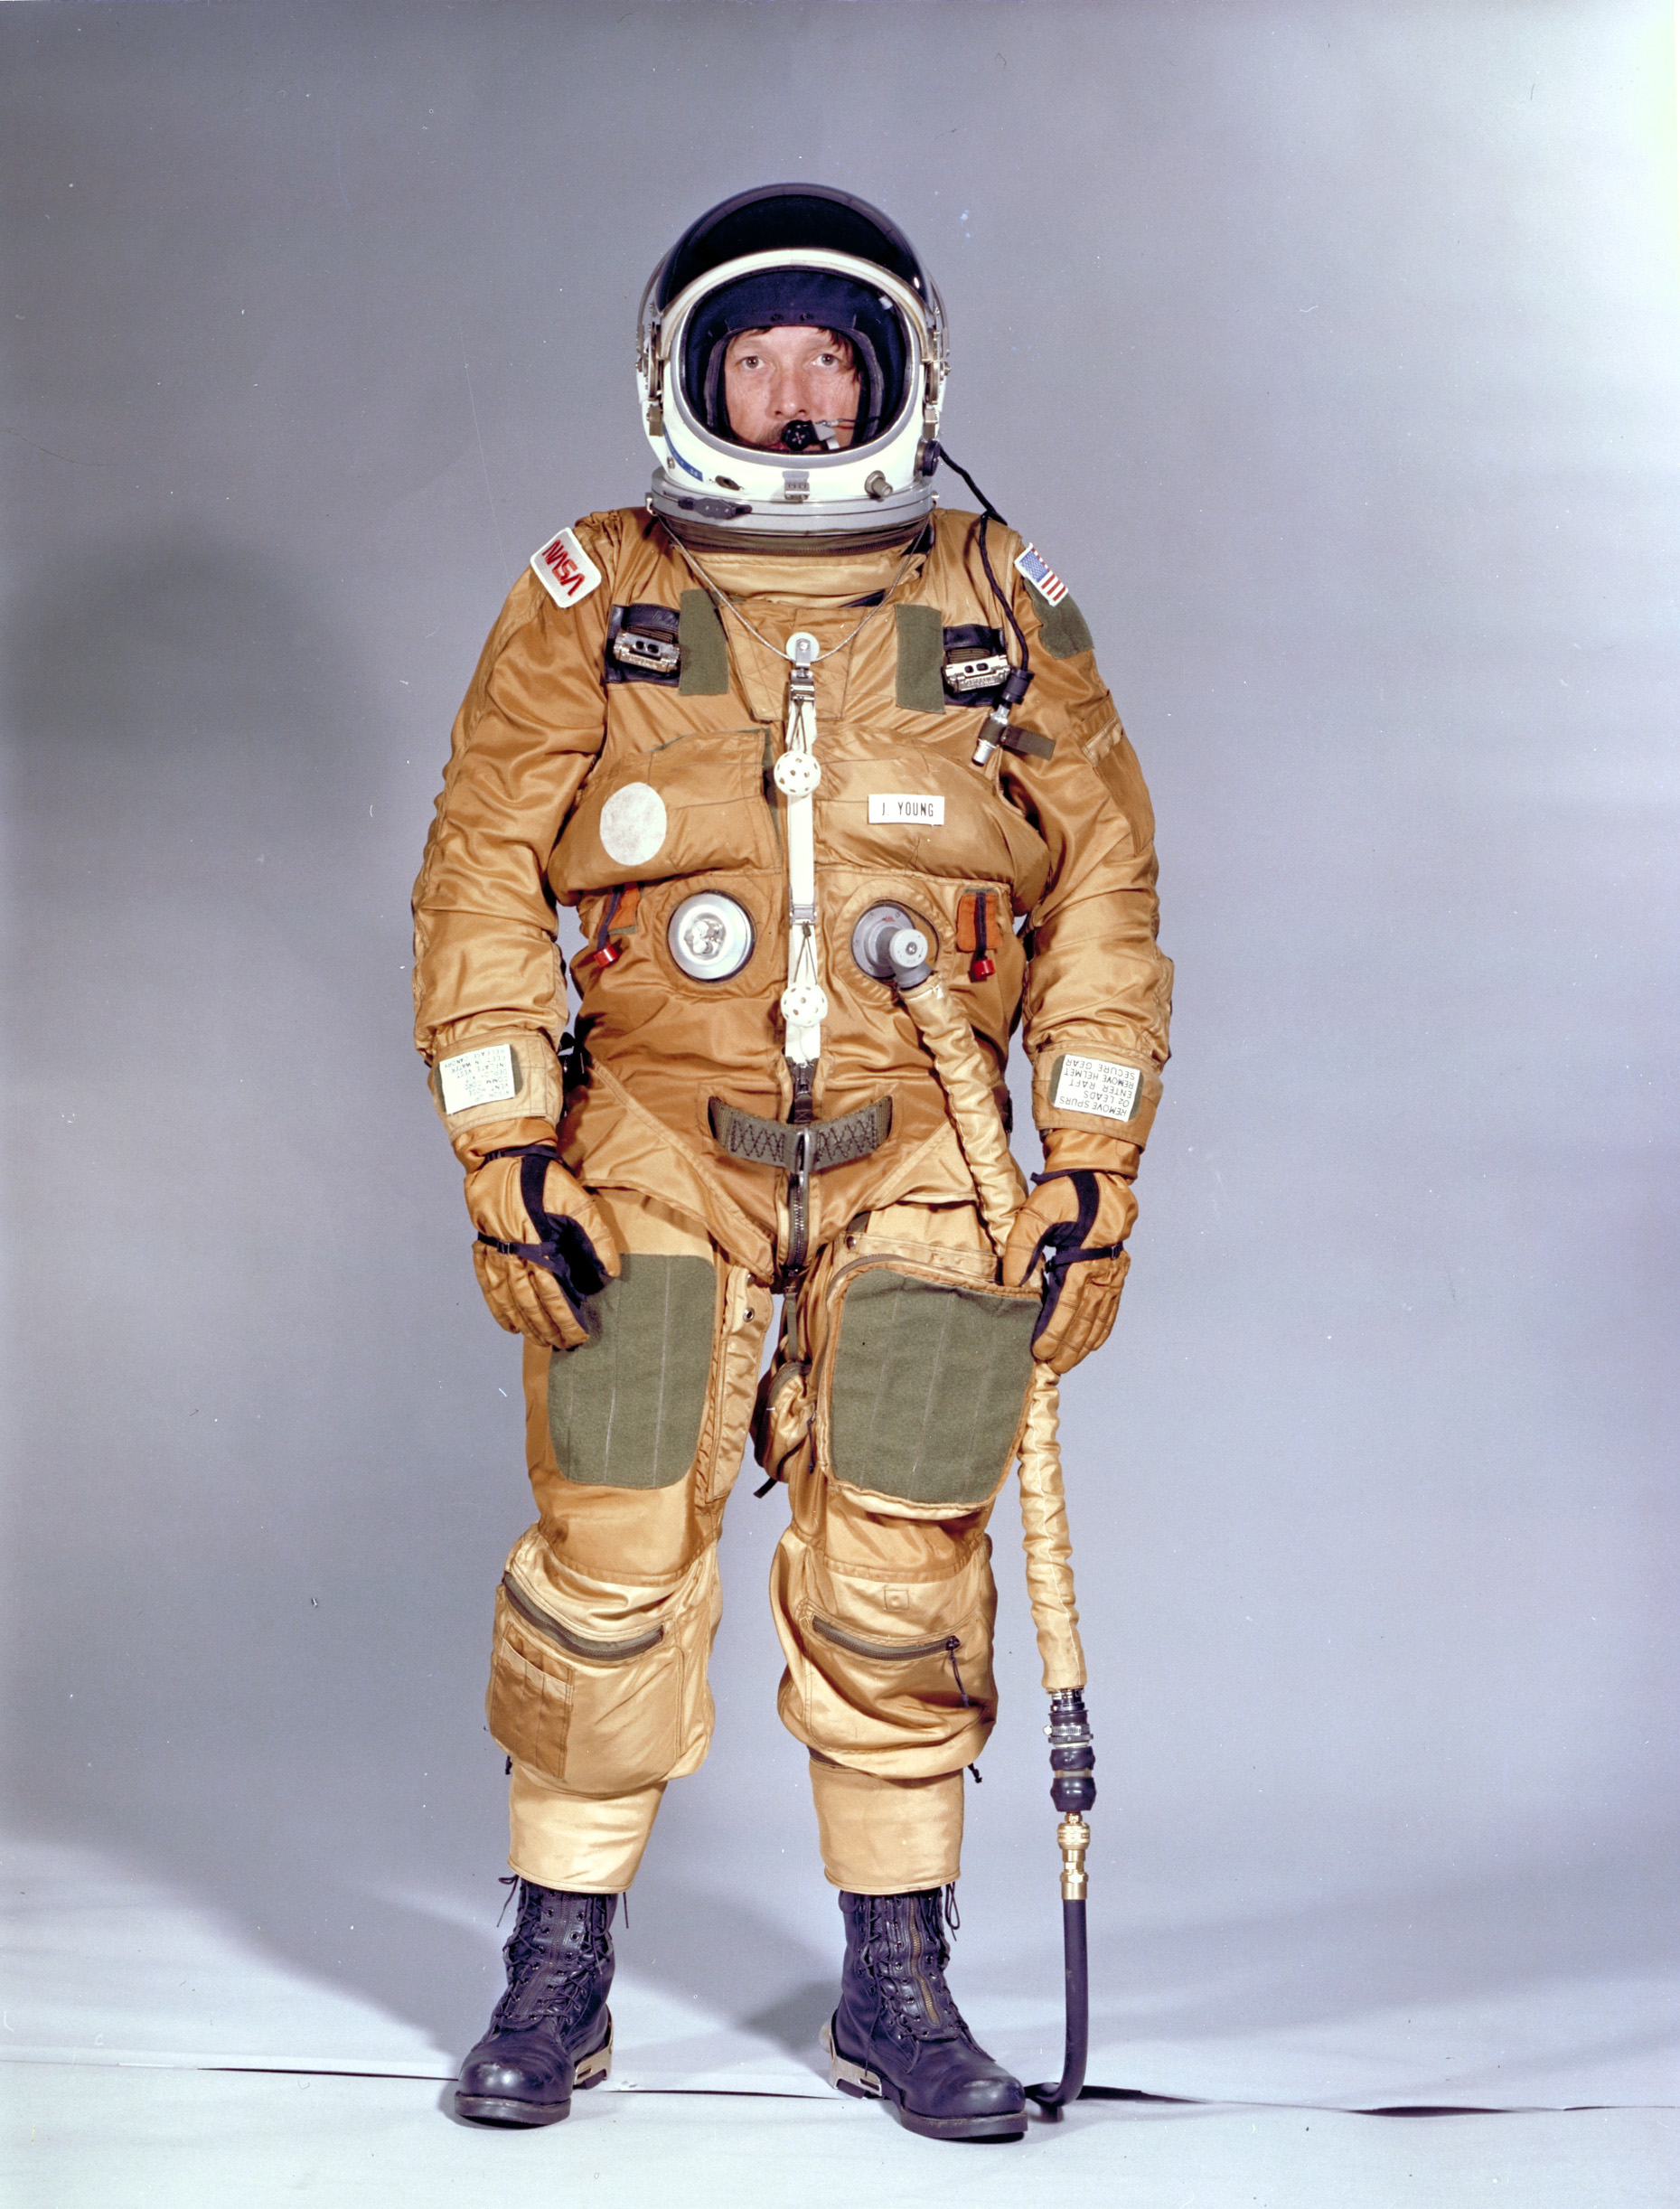 space suit astronaut in space - photo #23